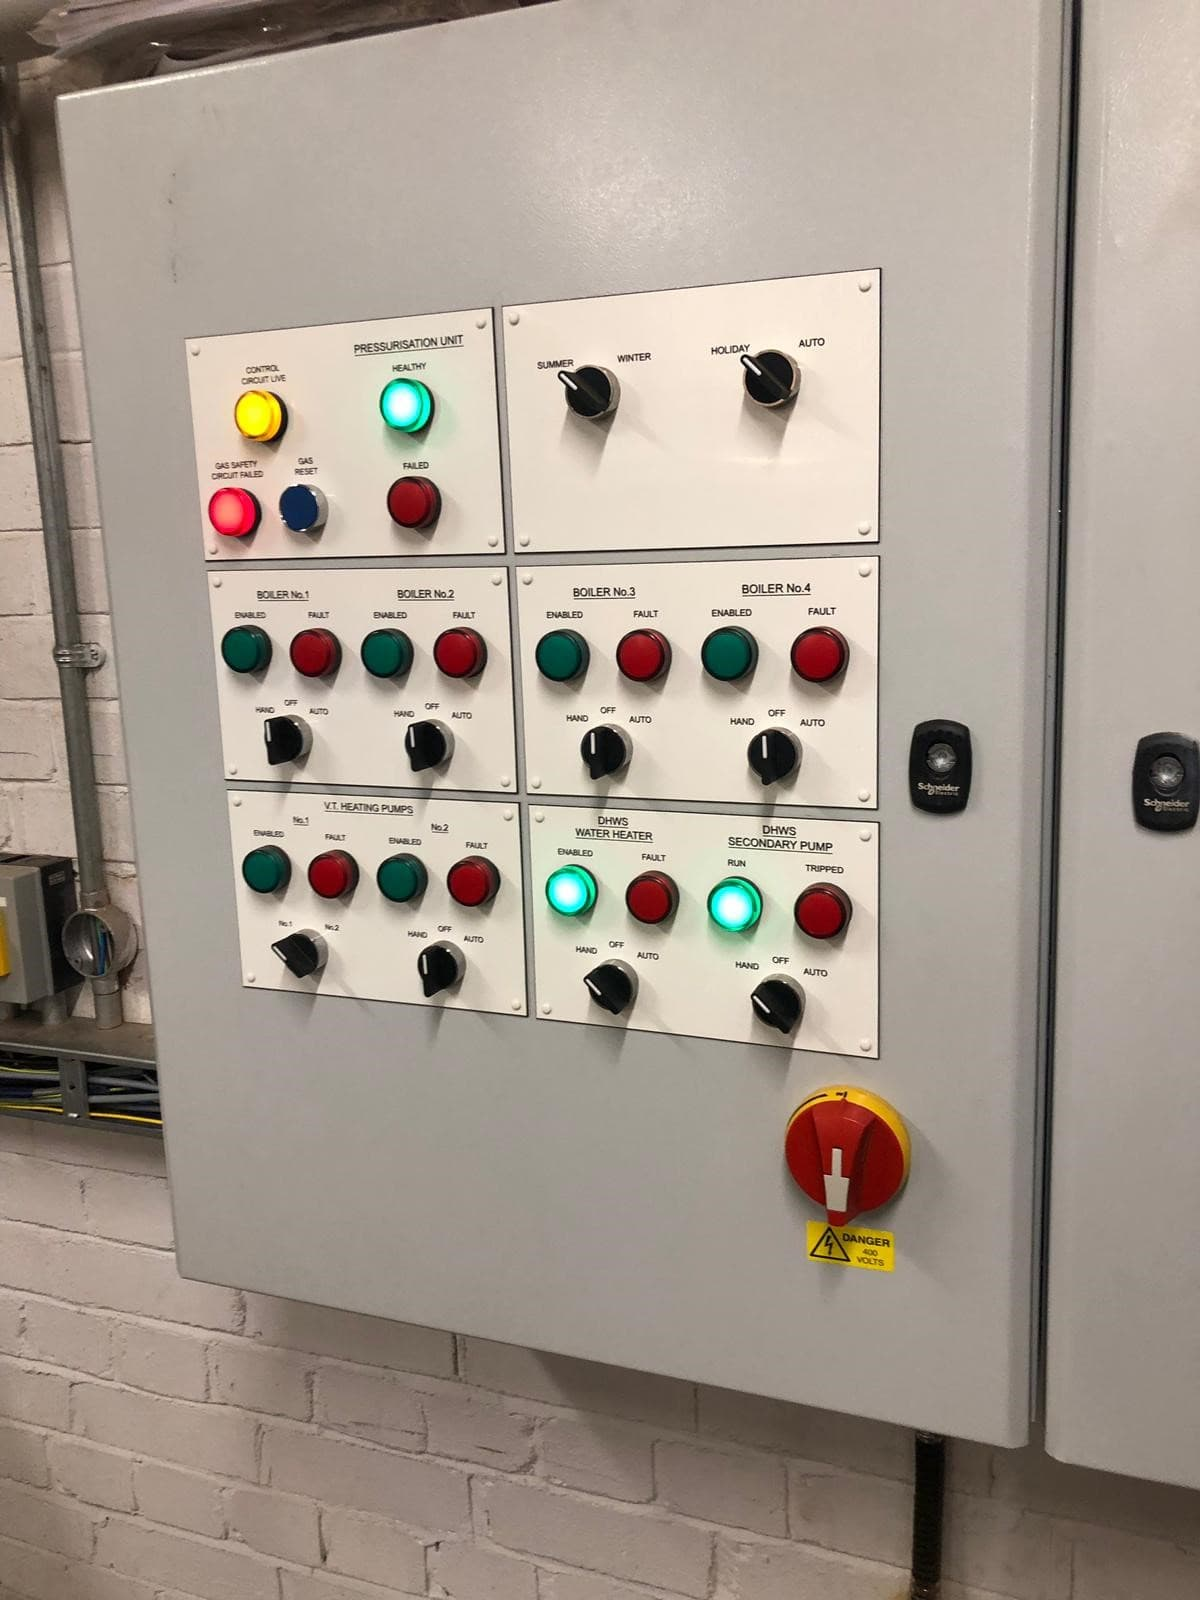 Water and heating commercial control panel